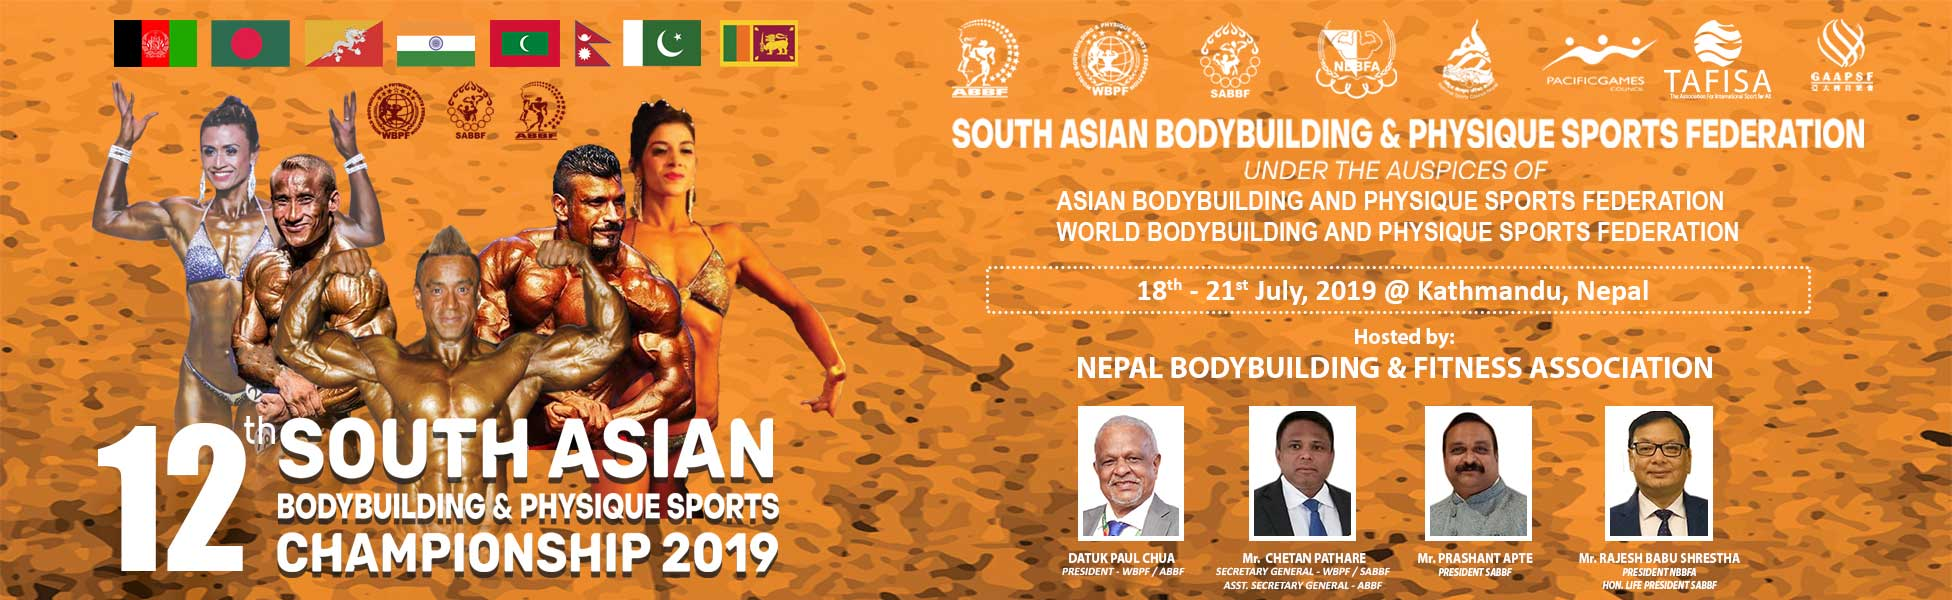 12TH SOUTH ASIAN CHAMPIONSHI 2019